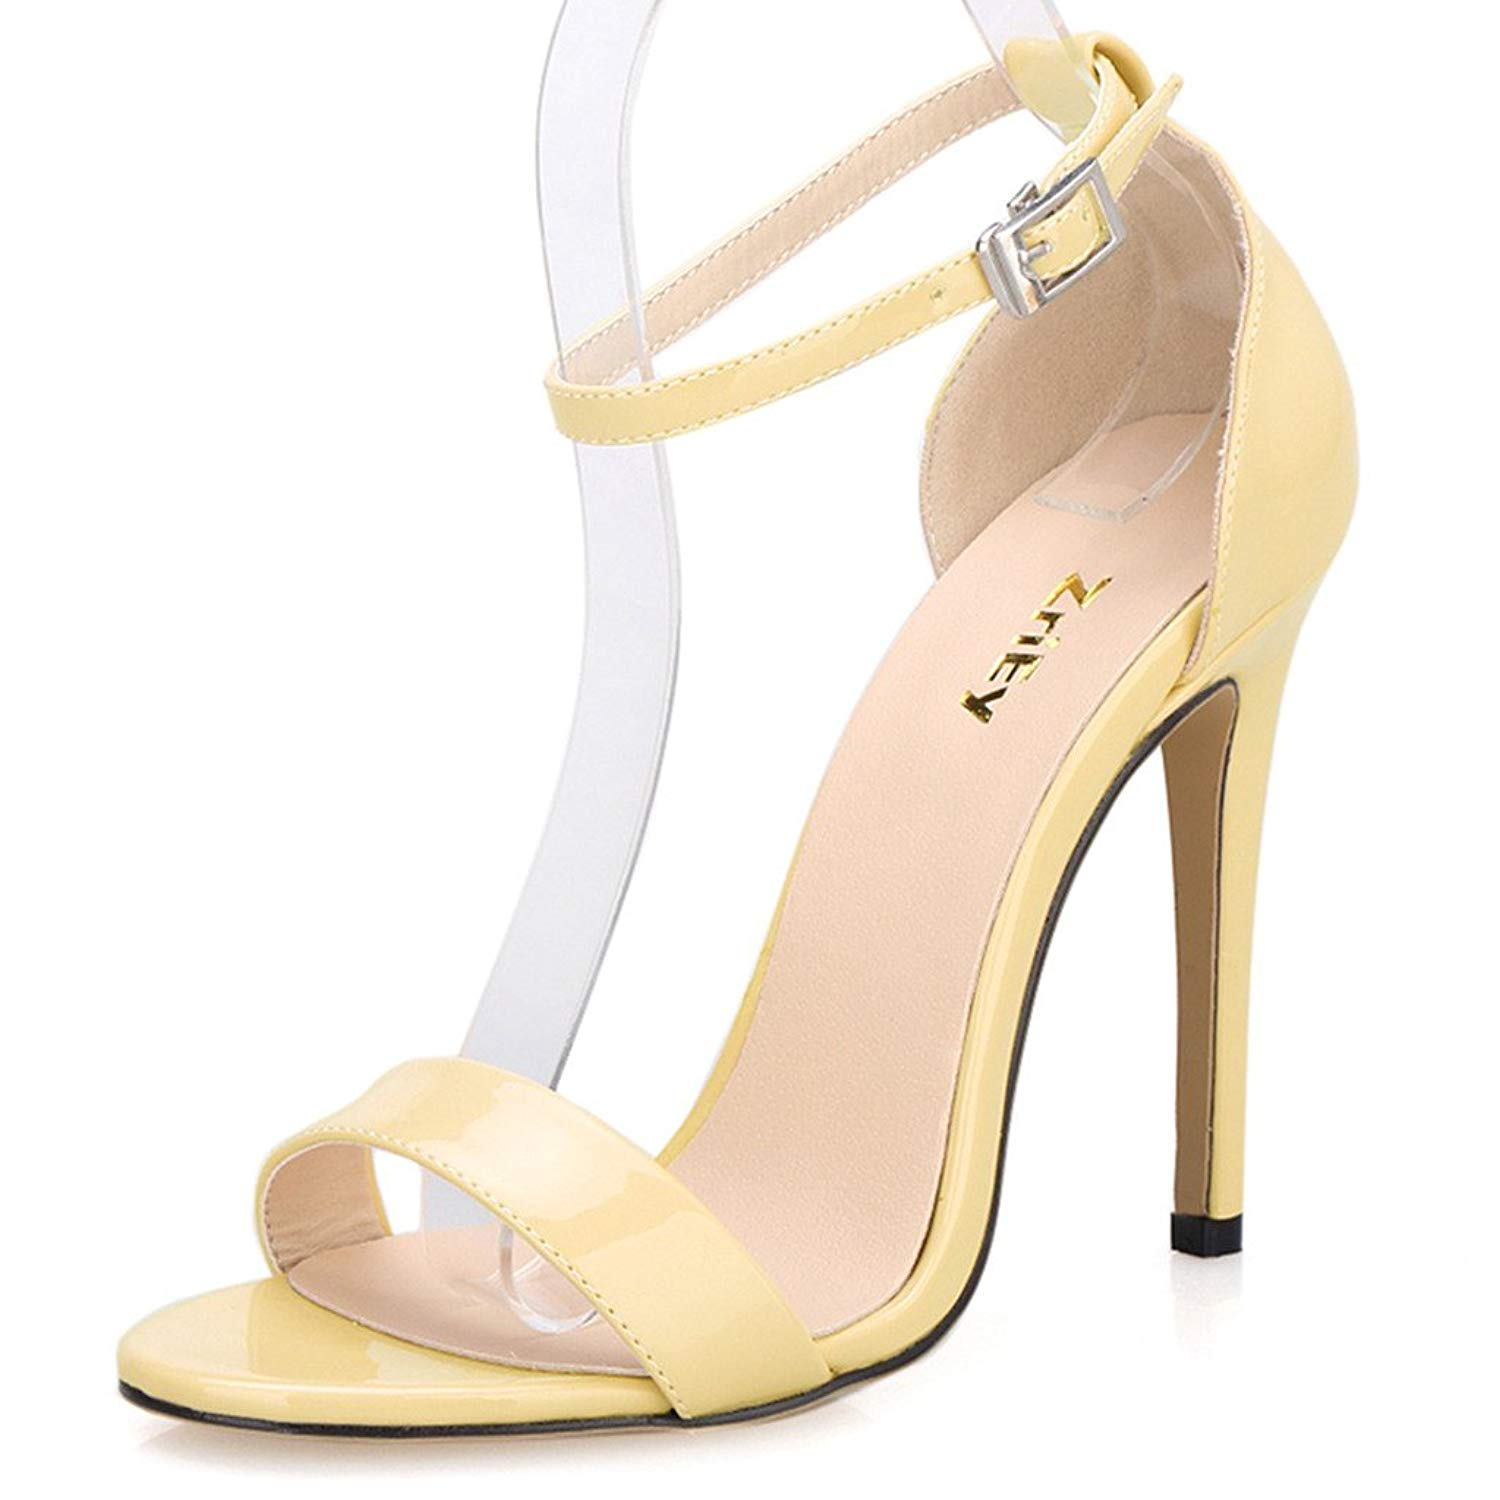 d11495593 Get Quotations · ZriEy Women s Ankle Strap Dress High Heel Sandals  Stilettos 11CM Open Toe Heeled Sandal Patent Leather